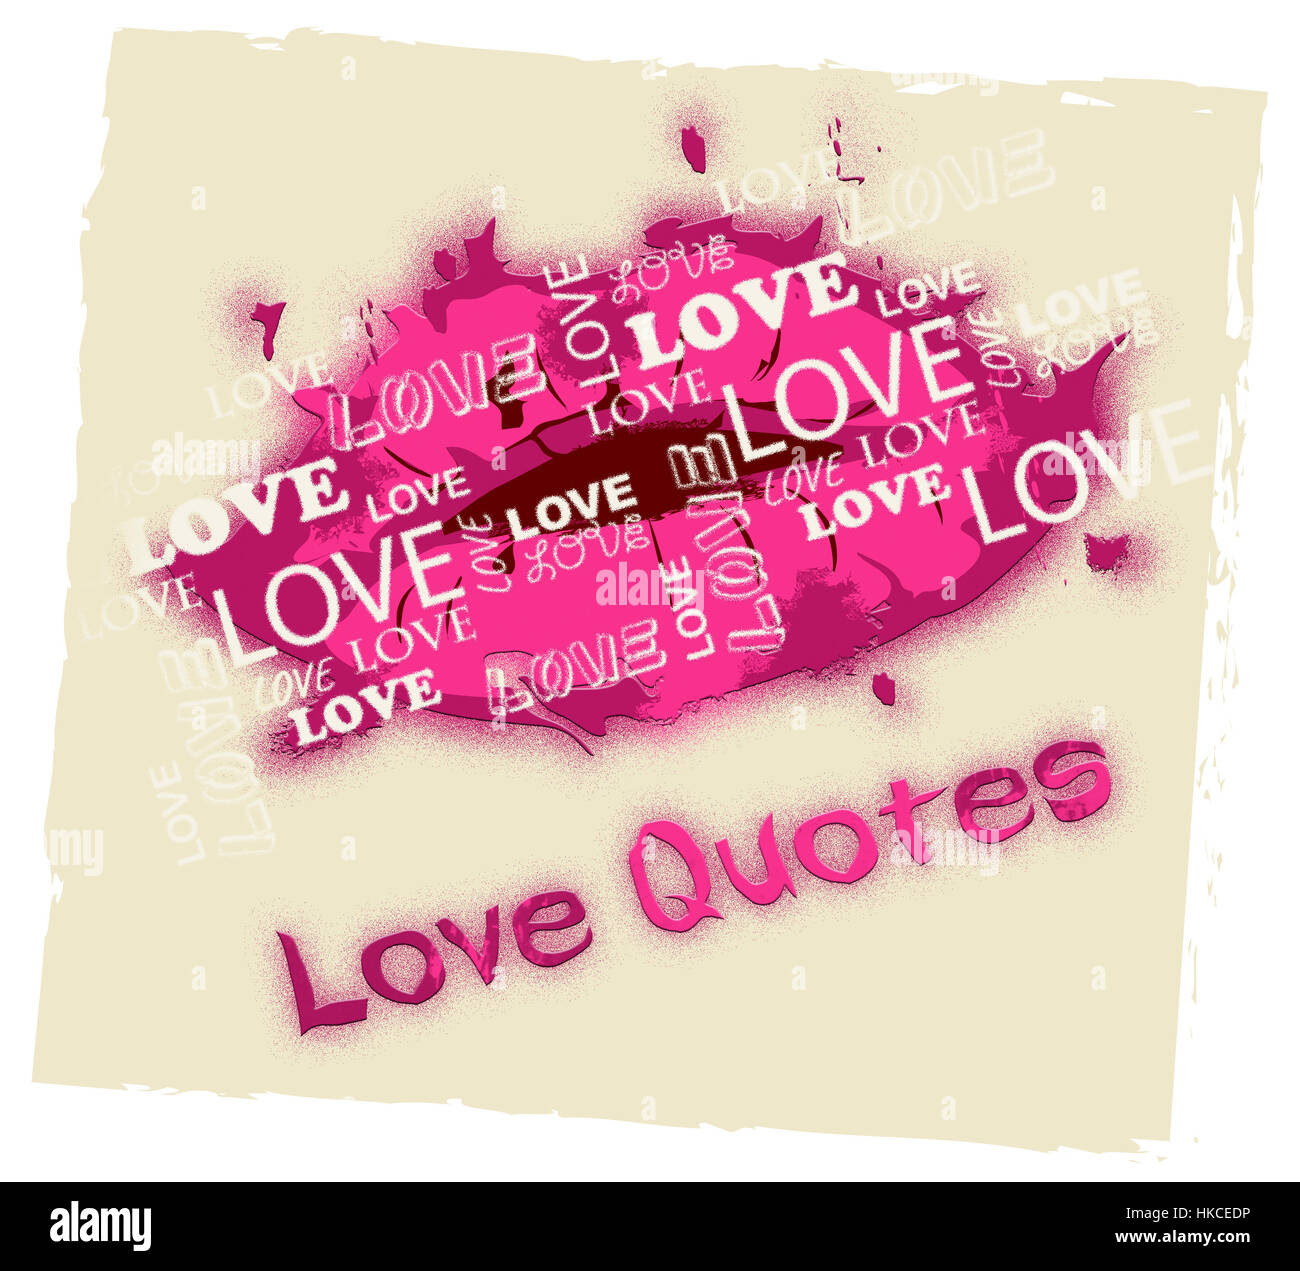 Love Quotes Lips Shows Loving Inspiration And Affection